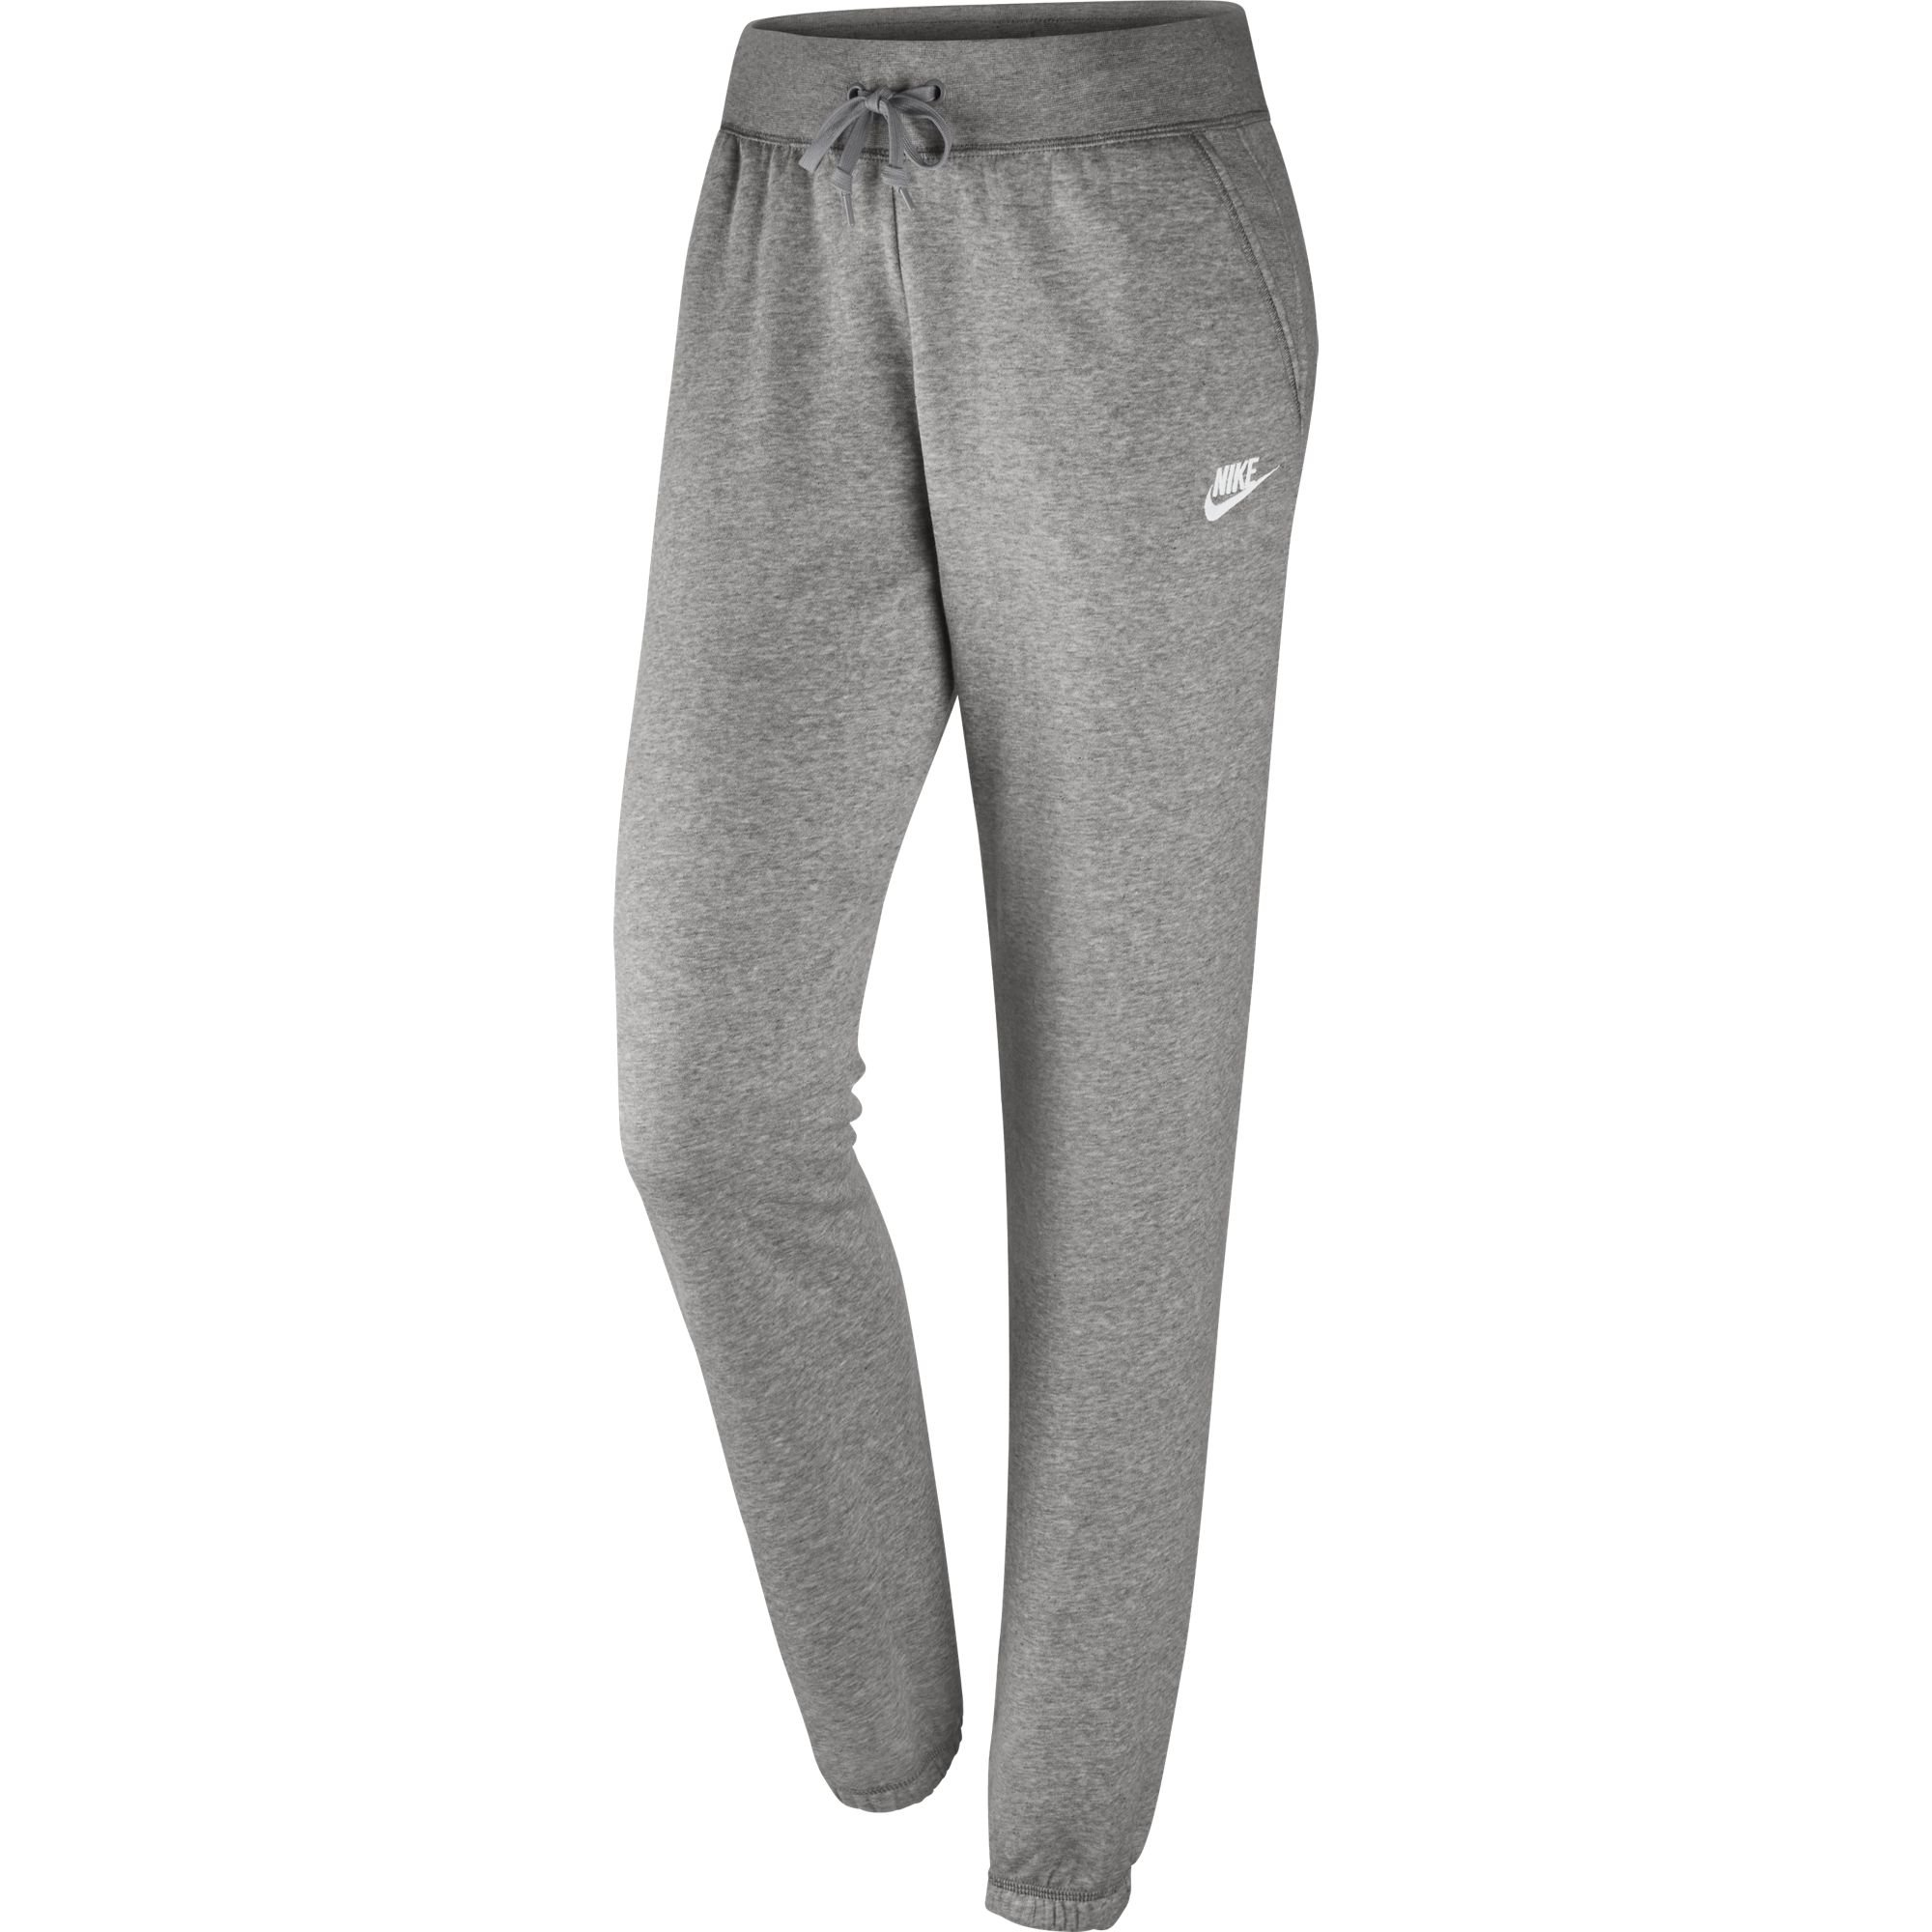 NIKE Women's Sportswear Loose Fleece Pants, Dark Grey Heather/Matte Silver/White, Small